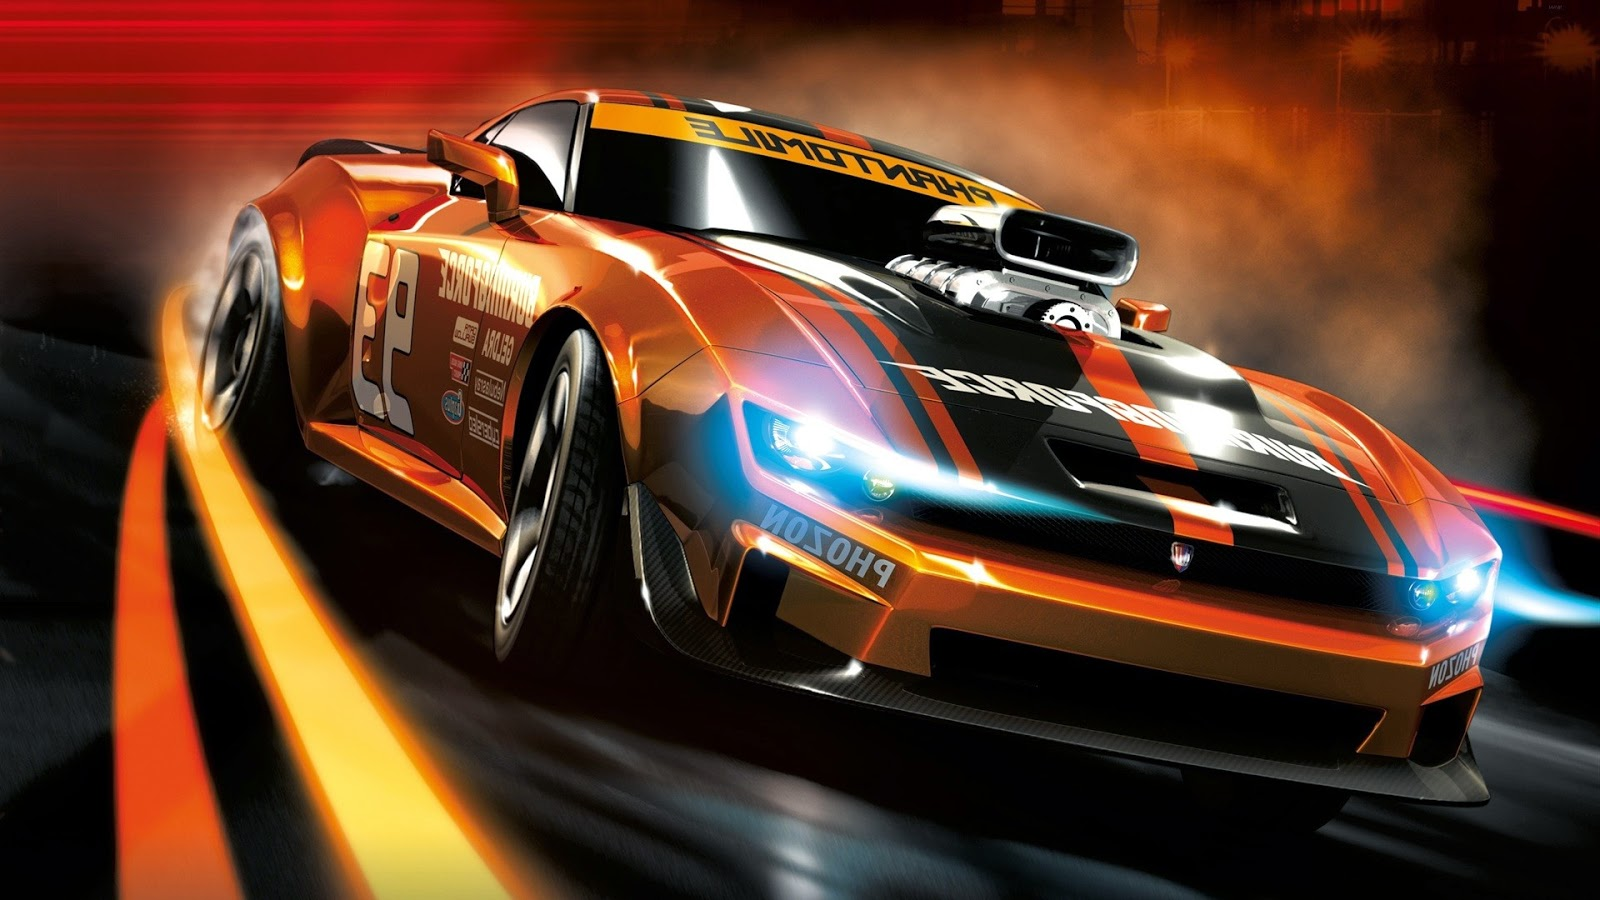 Very Cool Car Wallpapers